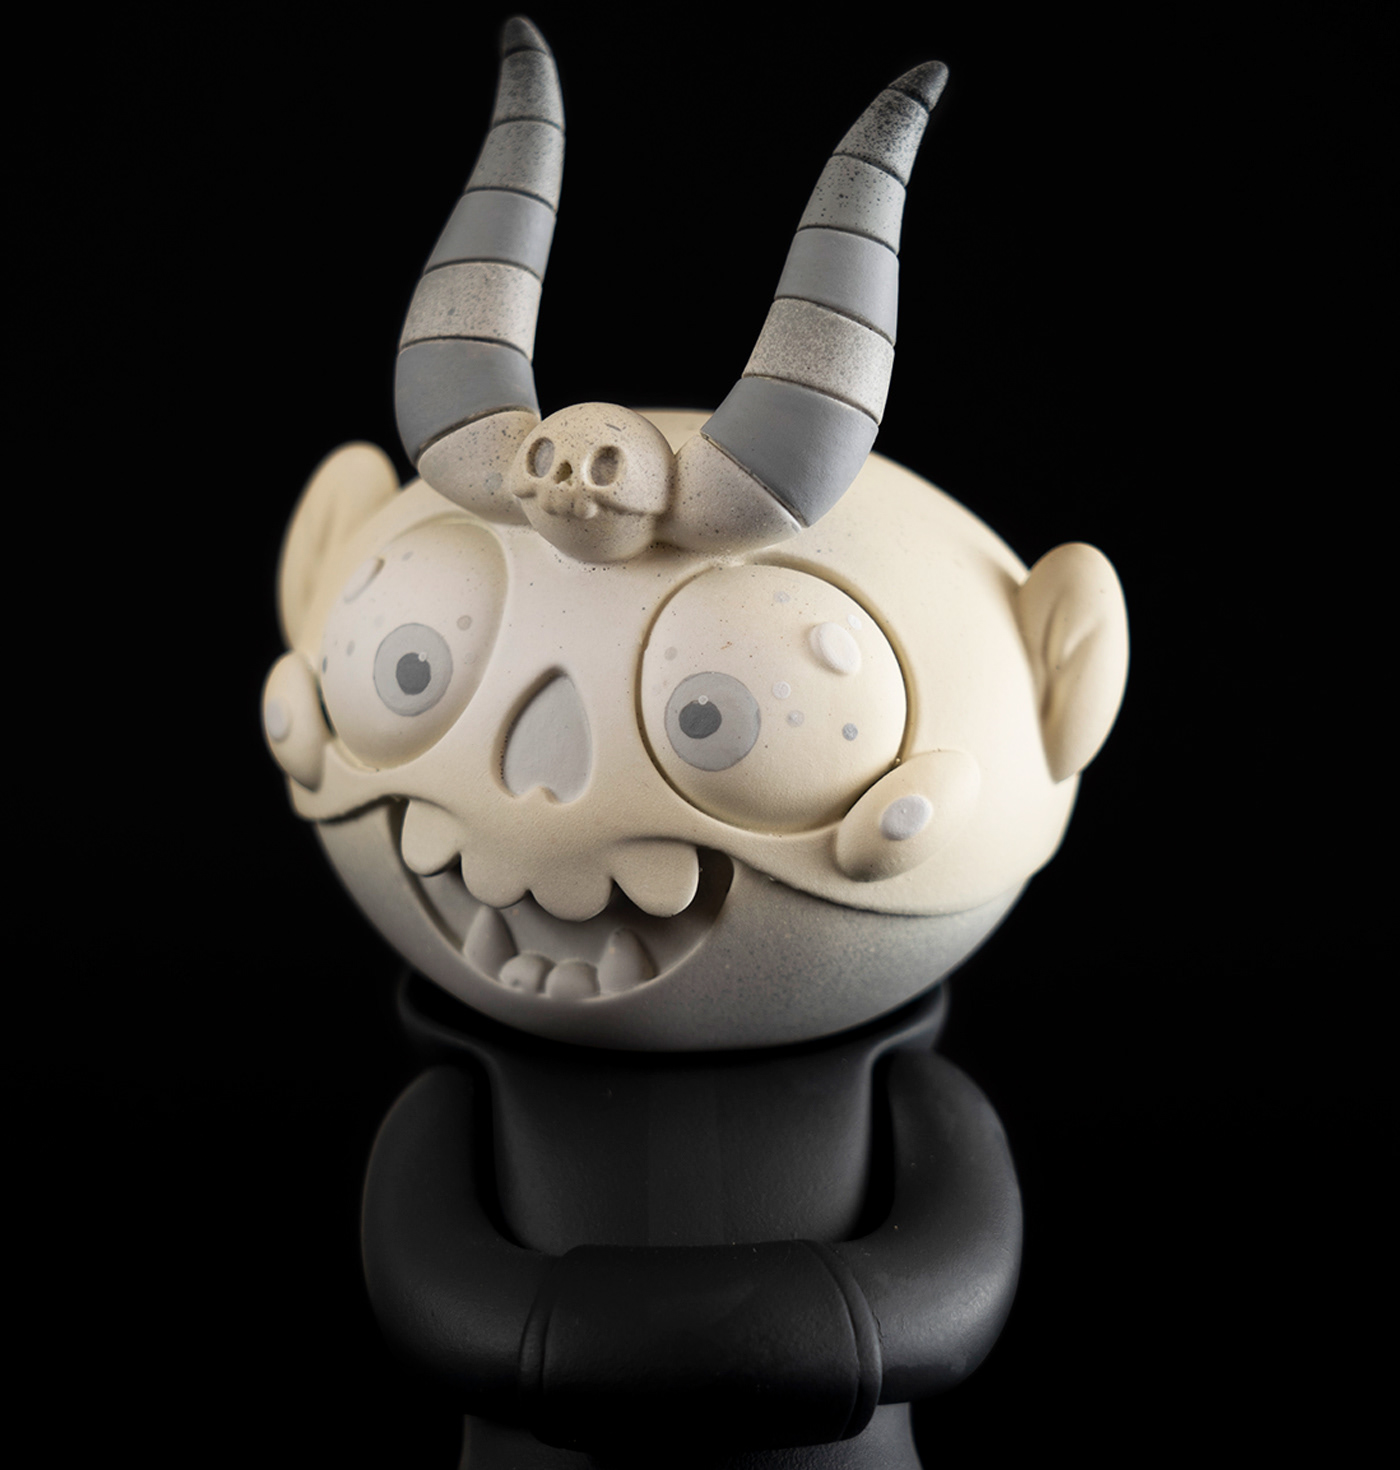 artoy Character characterdesign colors quics resintoy skull toy toys